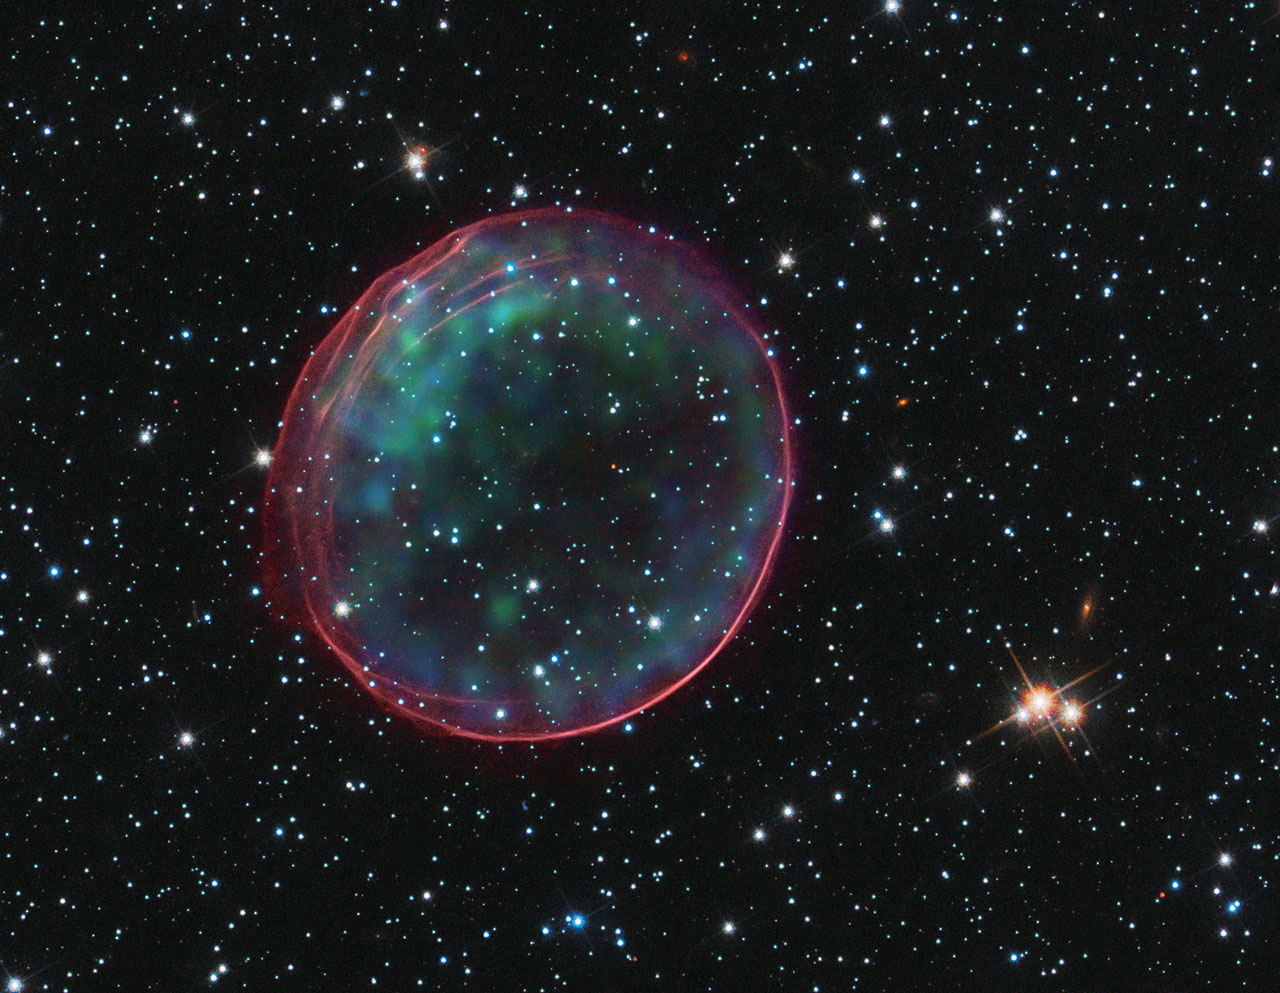 This delicate shell, photographed by the NASA/ESA Hubble Space Telescope, appears to float serenely in the depths of space, but this apparent calm hides an inner turmoil. The gaseous envelope formed as the expanding blast wave and ejected material from a supernova tore through the nearby interstellar medium. Called SNR B0509-67.5 (or SNR 0509 for short), the bubble is the visible remnant of a powerful stellar explosion in the Large Magellanic Cloud (LMC), a small galaxy about 160 000 light-years from Earth. Ripples in the shell's surface may be caused either by subtle variations in the density of the ambient interstellar gas, or possibly be driven from the interior by fragments from the initial explosion. The bubble-shaped shroud of gas is 23 light-years across and is expanding at more than 18 million km/h. Hubble's Advanced Camera for Surveys observed the supernova remnant on 28 October 2006 with a filter that isolates light from the glowing hydrogen seen in the expanding shell. These observations were then combined with visible-light images of the surrounding star field that were imaged with Hubble's Wide Field Camera 3 on 4 November 2010, and archival X-ray observations taken by NASA's Chandra X-ray Observatory.